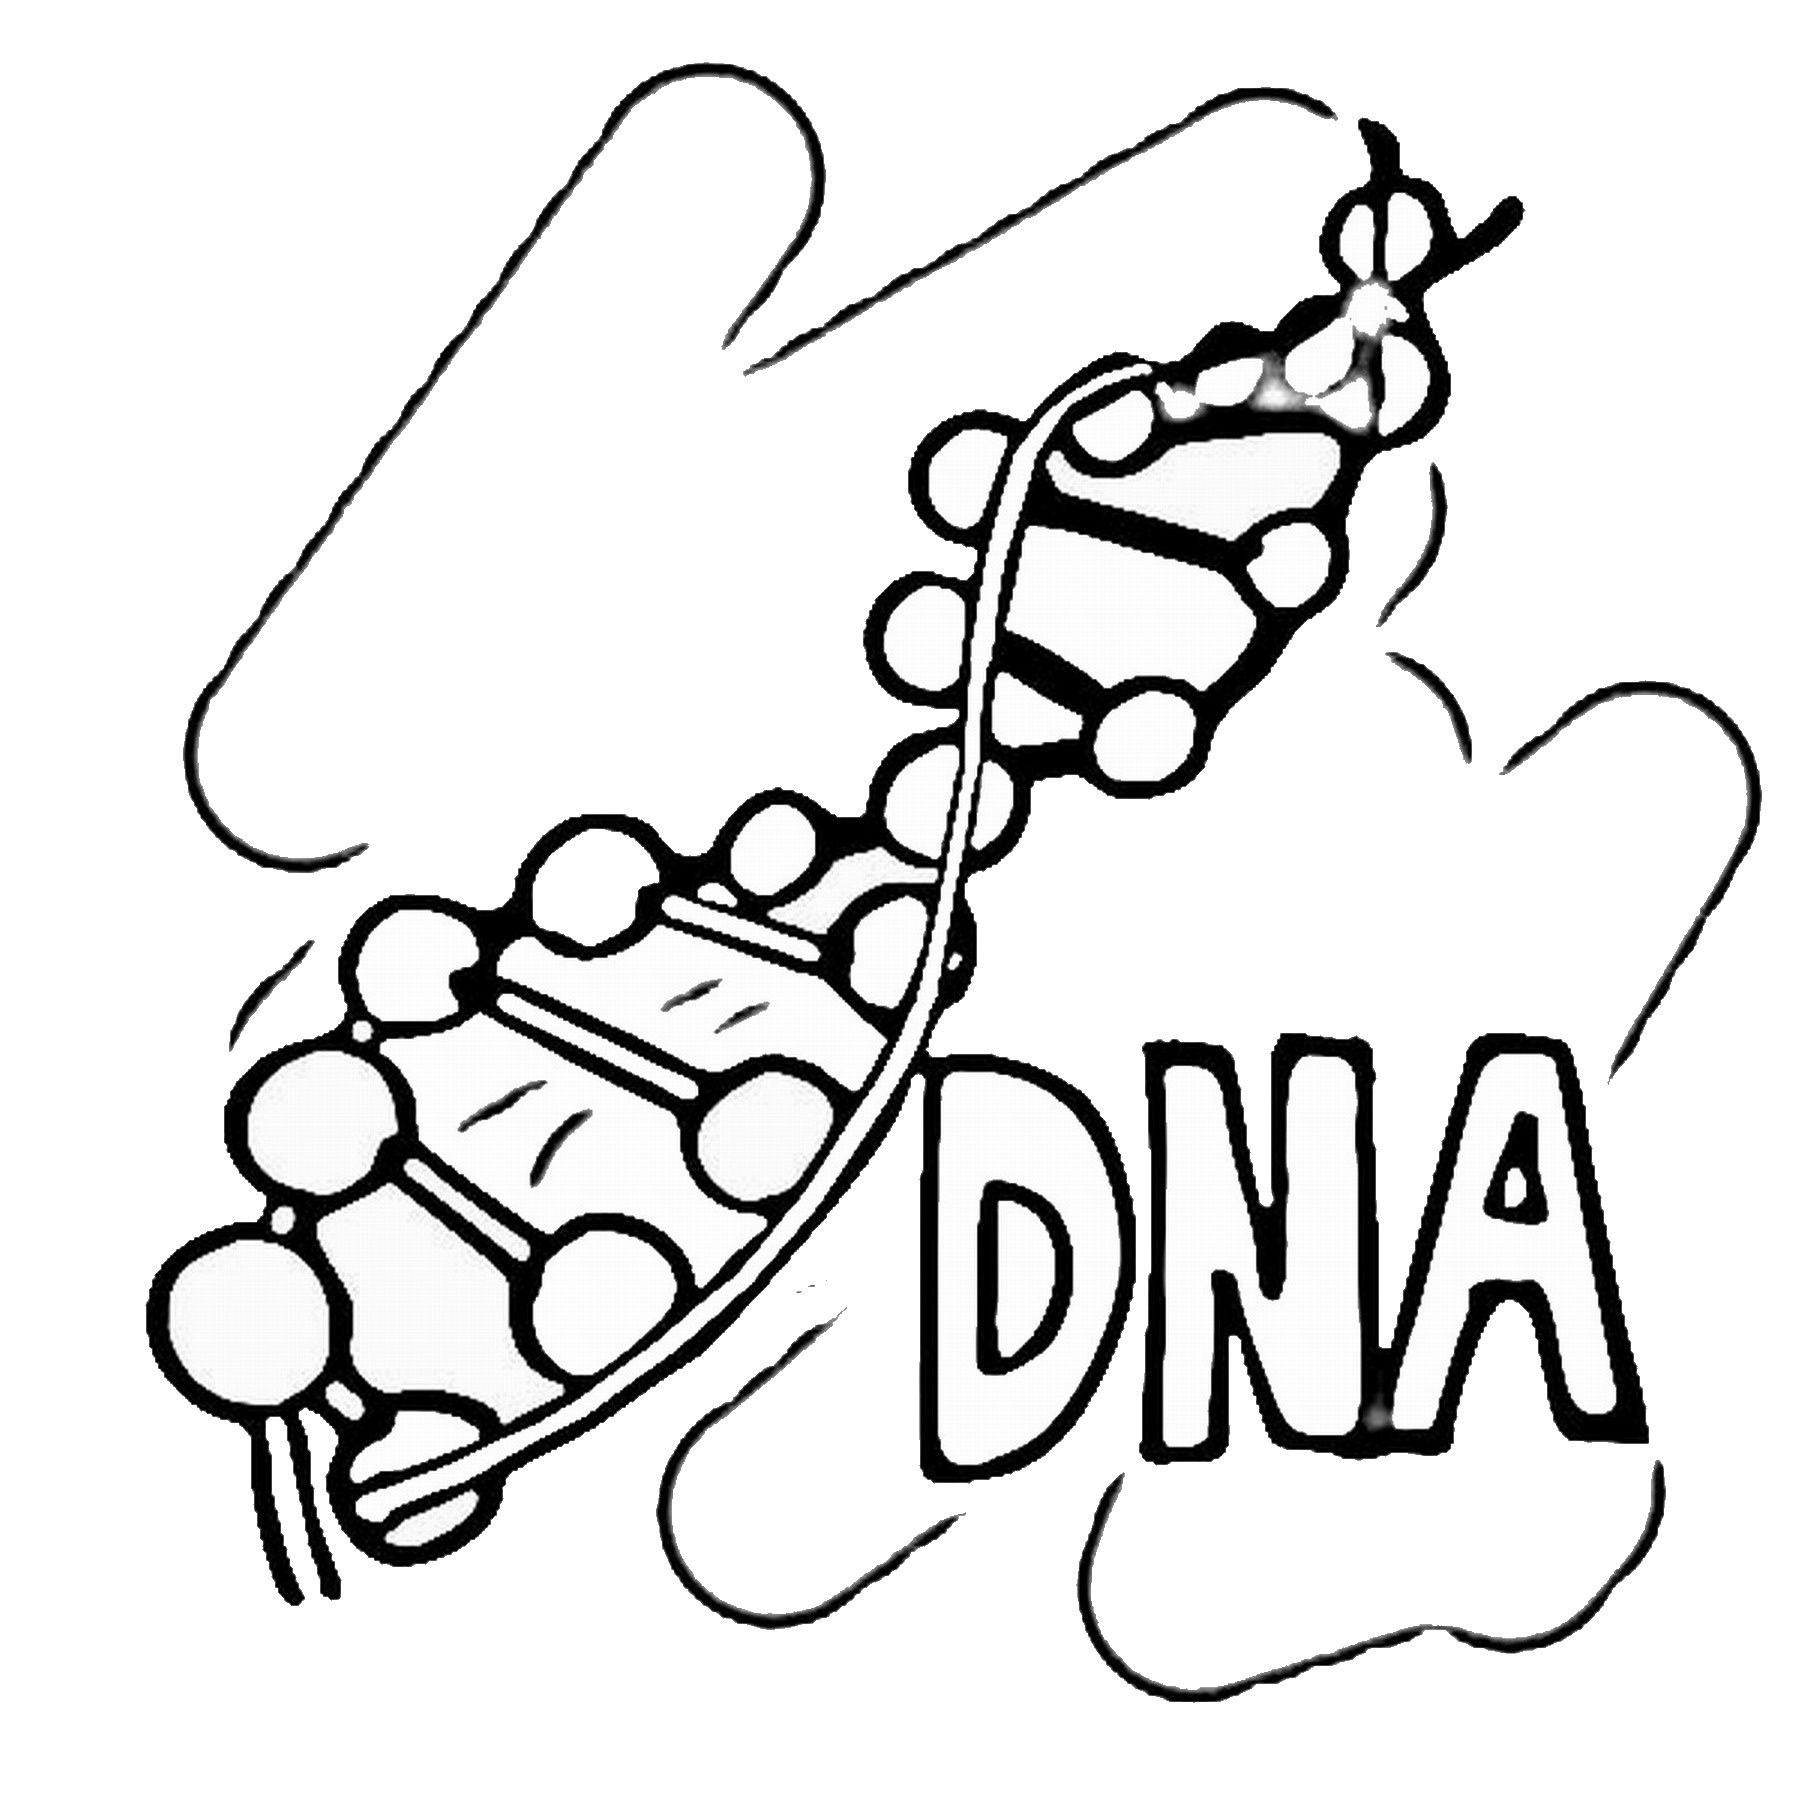 28 Chemistry Coloring Pages Selection | FREE COLORING PAGES